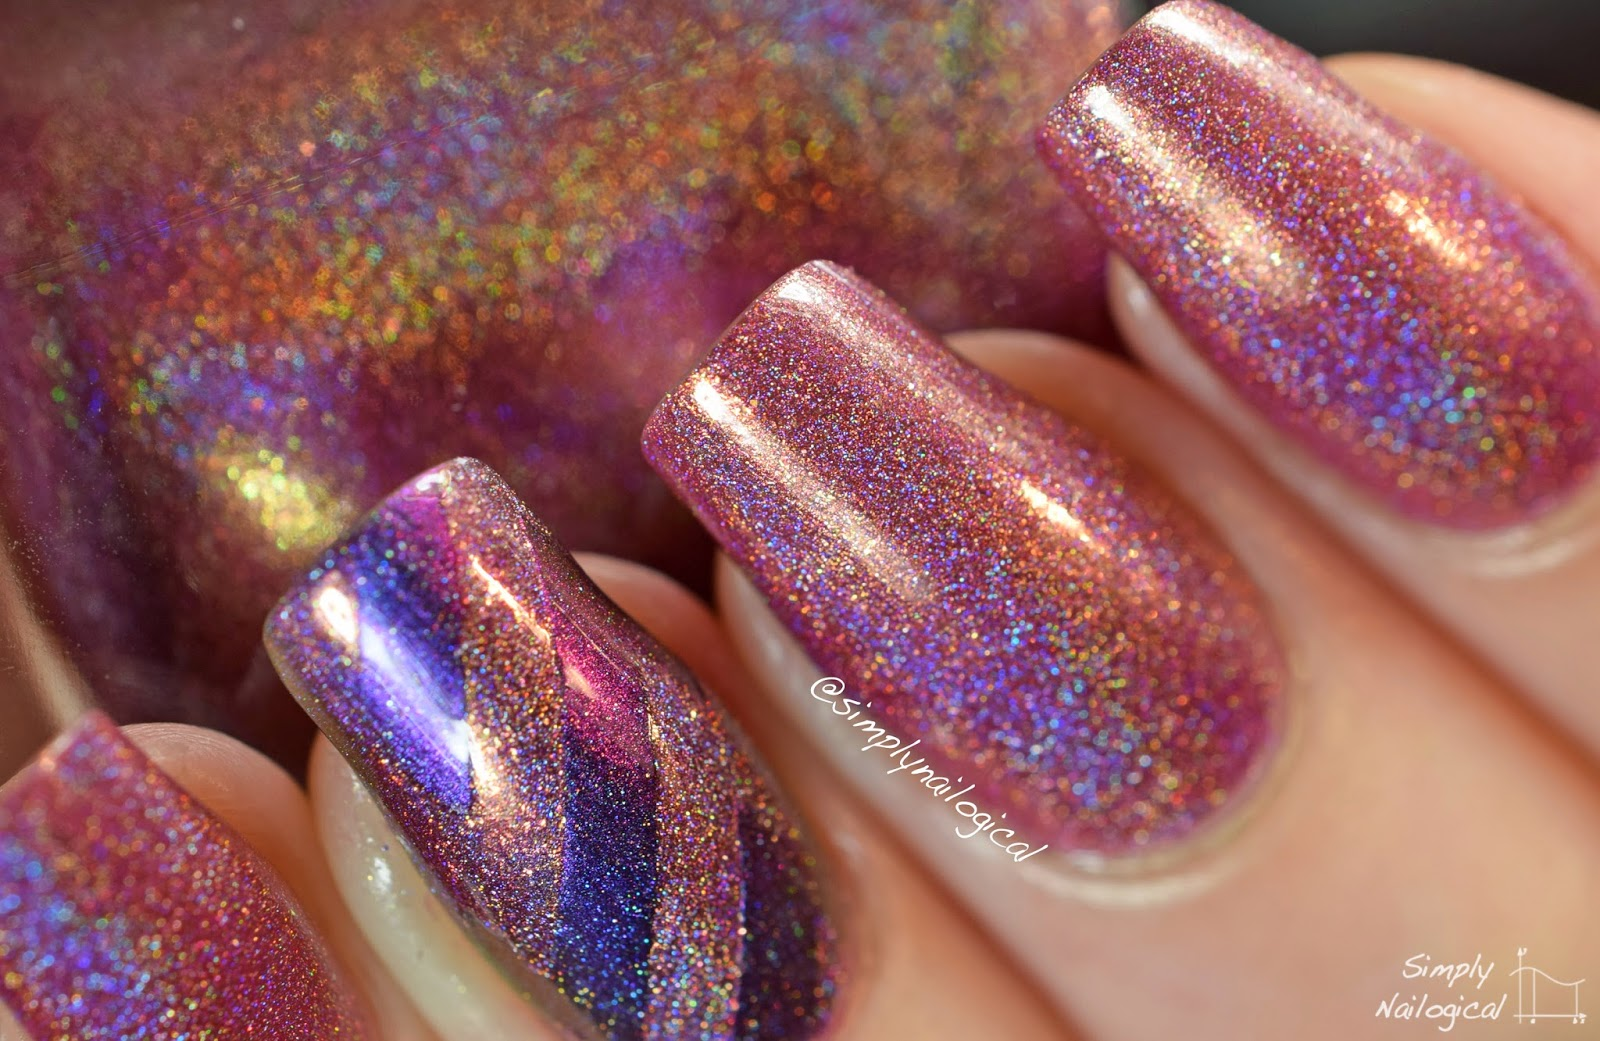 Champagne Blush - ILNP Fall 2014 collection